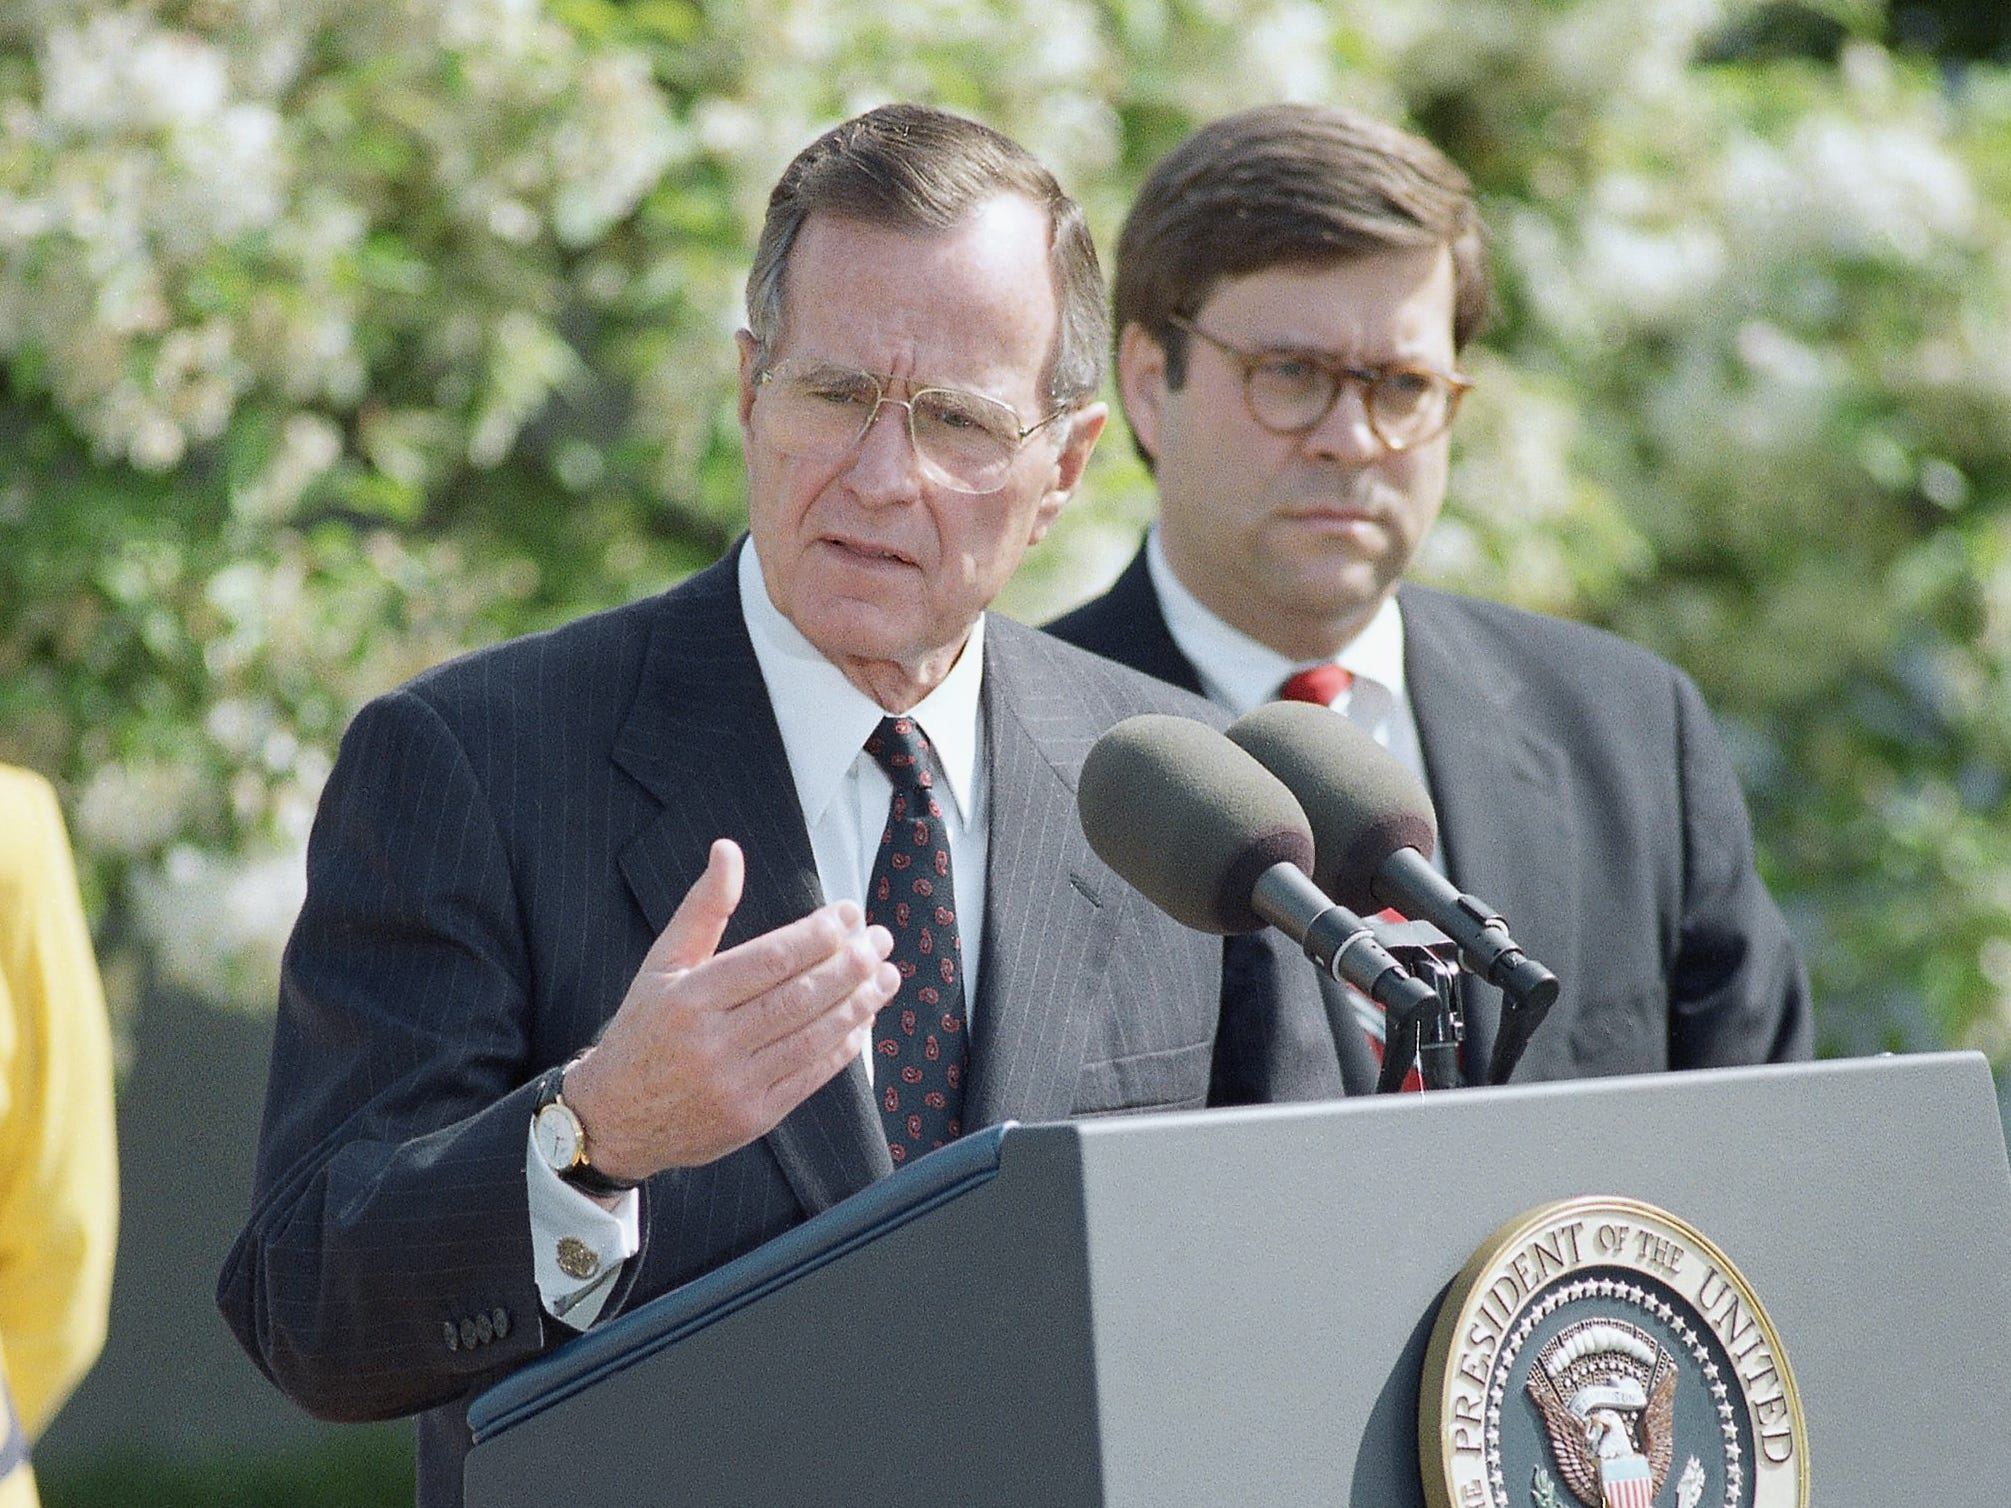 U.S. President George H. Bush gestures during an address in the Rose Garden of the White House in Washington, Friday, April 24, 1992 honoring the National Crime Victims Rights Award winners. Attorney General William Barr looks on at right. Each year the Justice department awards those individuals who have worked on behalf of crime victims and honors the accomplishments of the Victims of Crime Act passed in 1984. (AP Photo/J. Scott Applewhite)